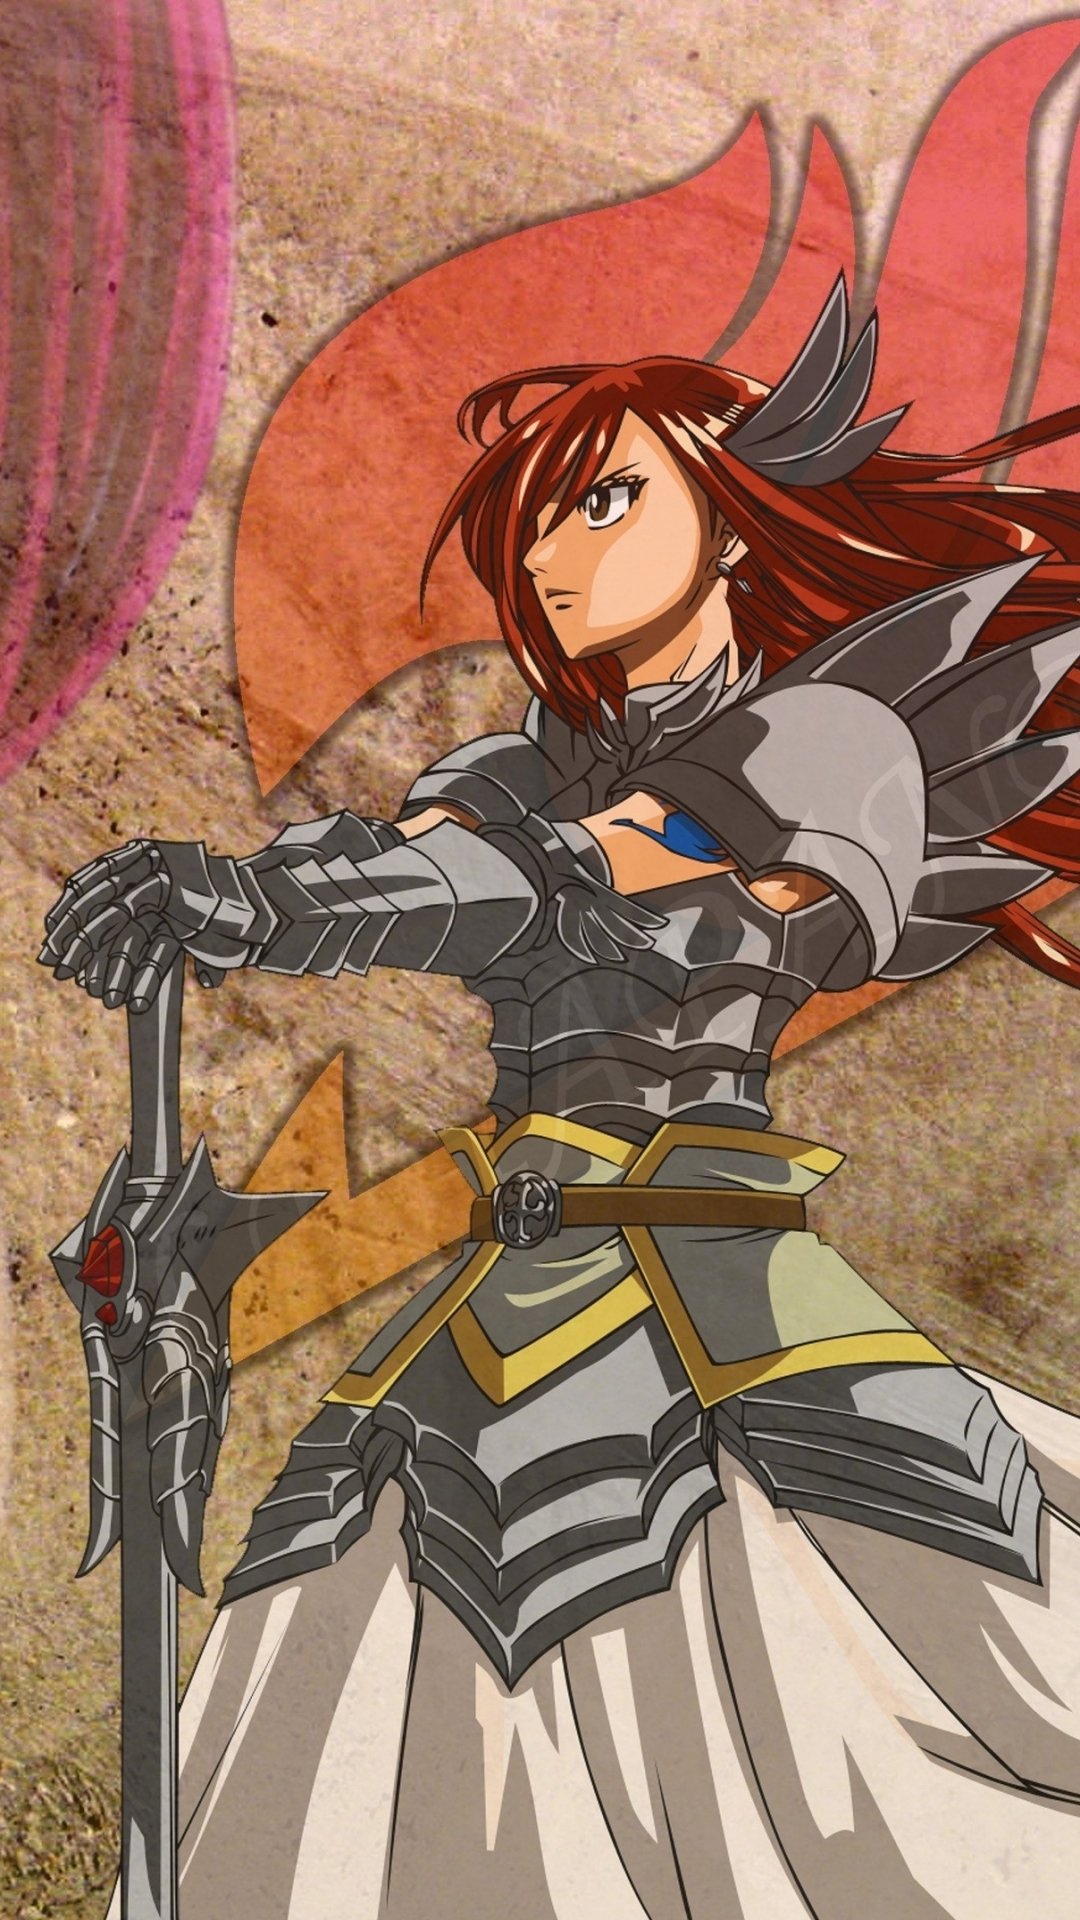 Iphone 6 anime fairy tail wallpaper id 474657 - Erza scarlet wallpaper ...